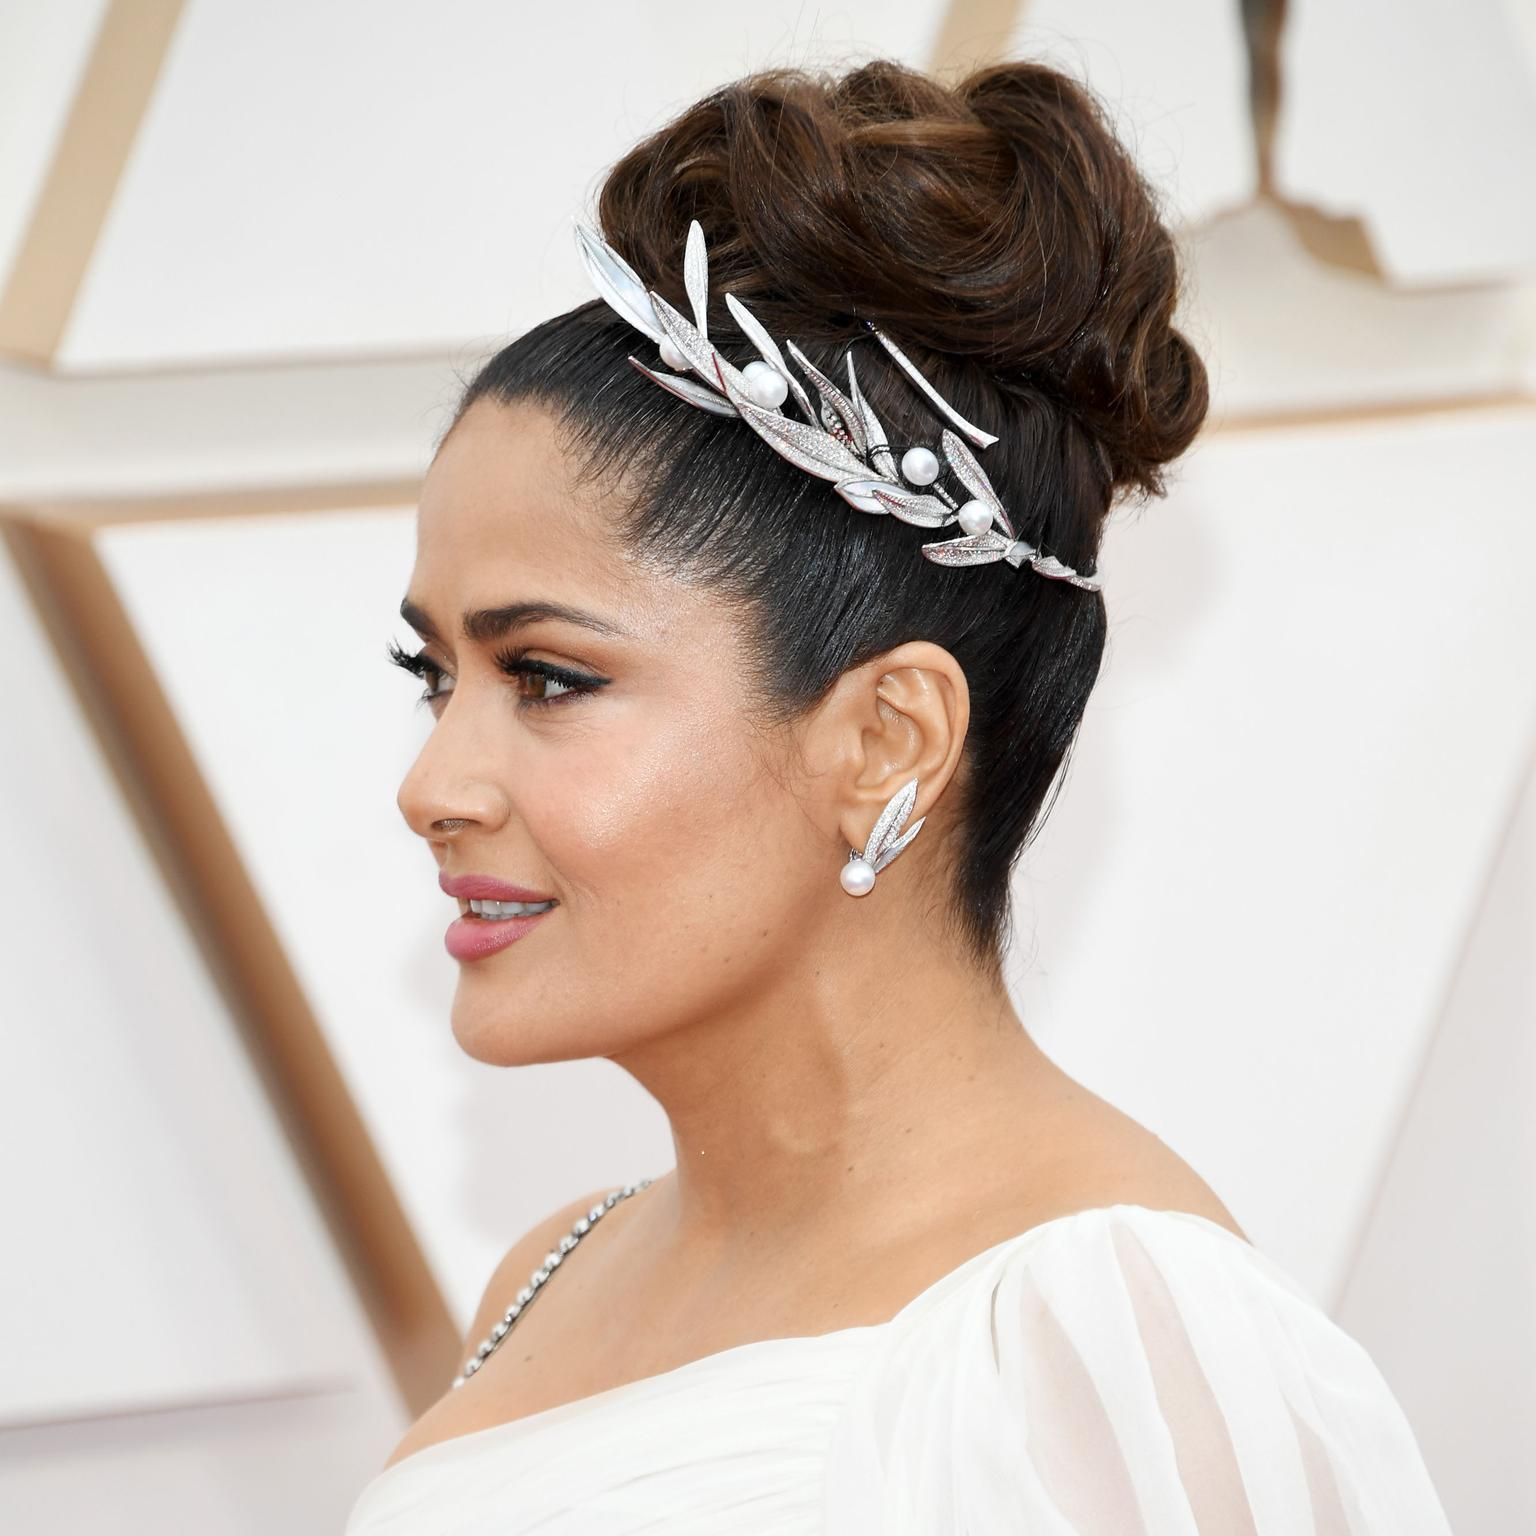 Academy Awards 2020: winning jewellery looks